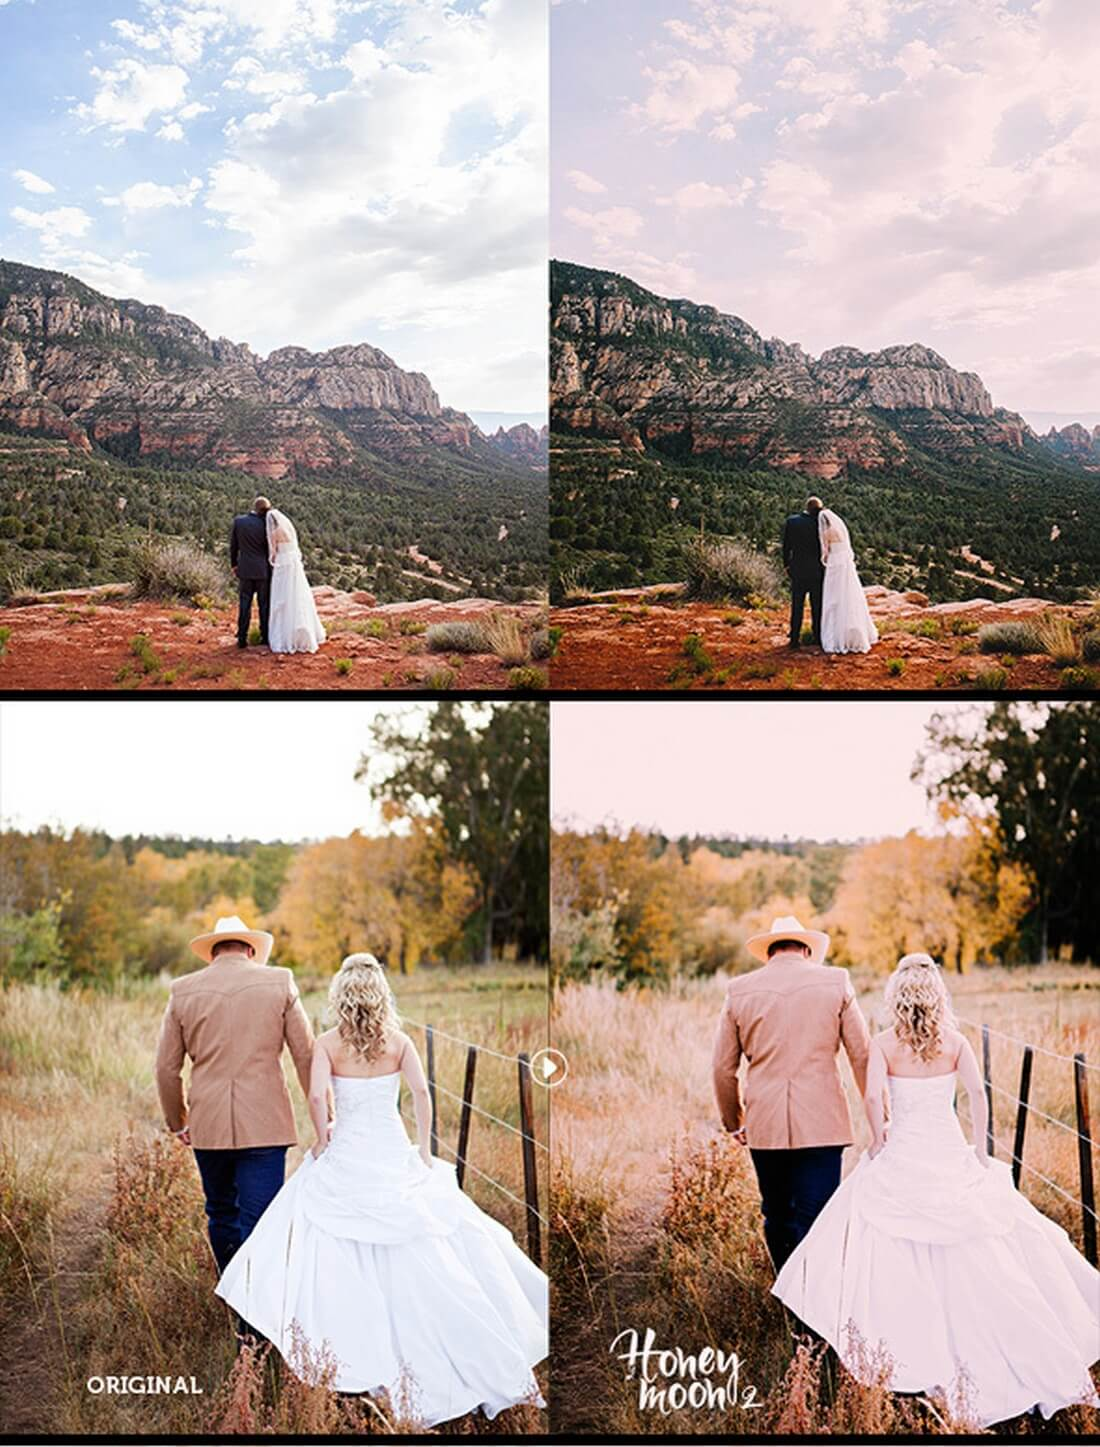 honeymoon-wedding-lightroom-presets